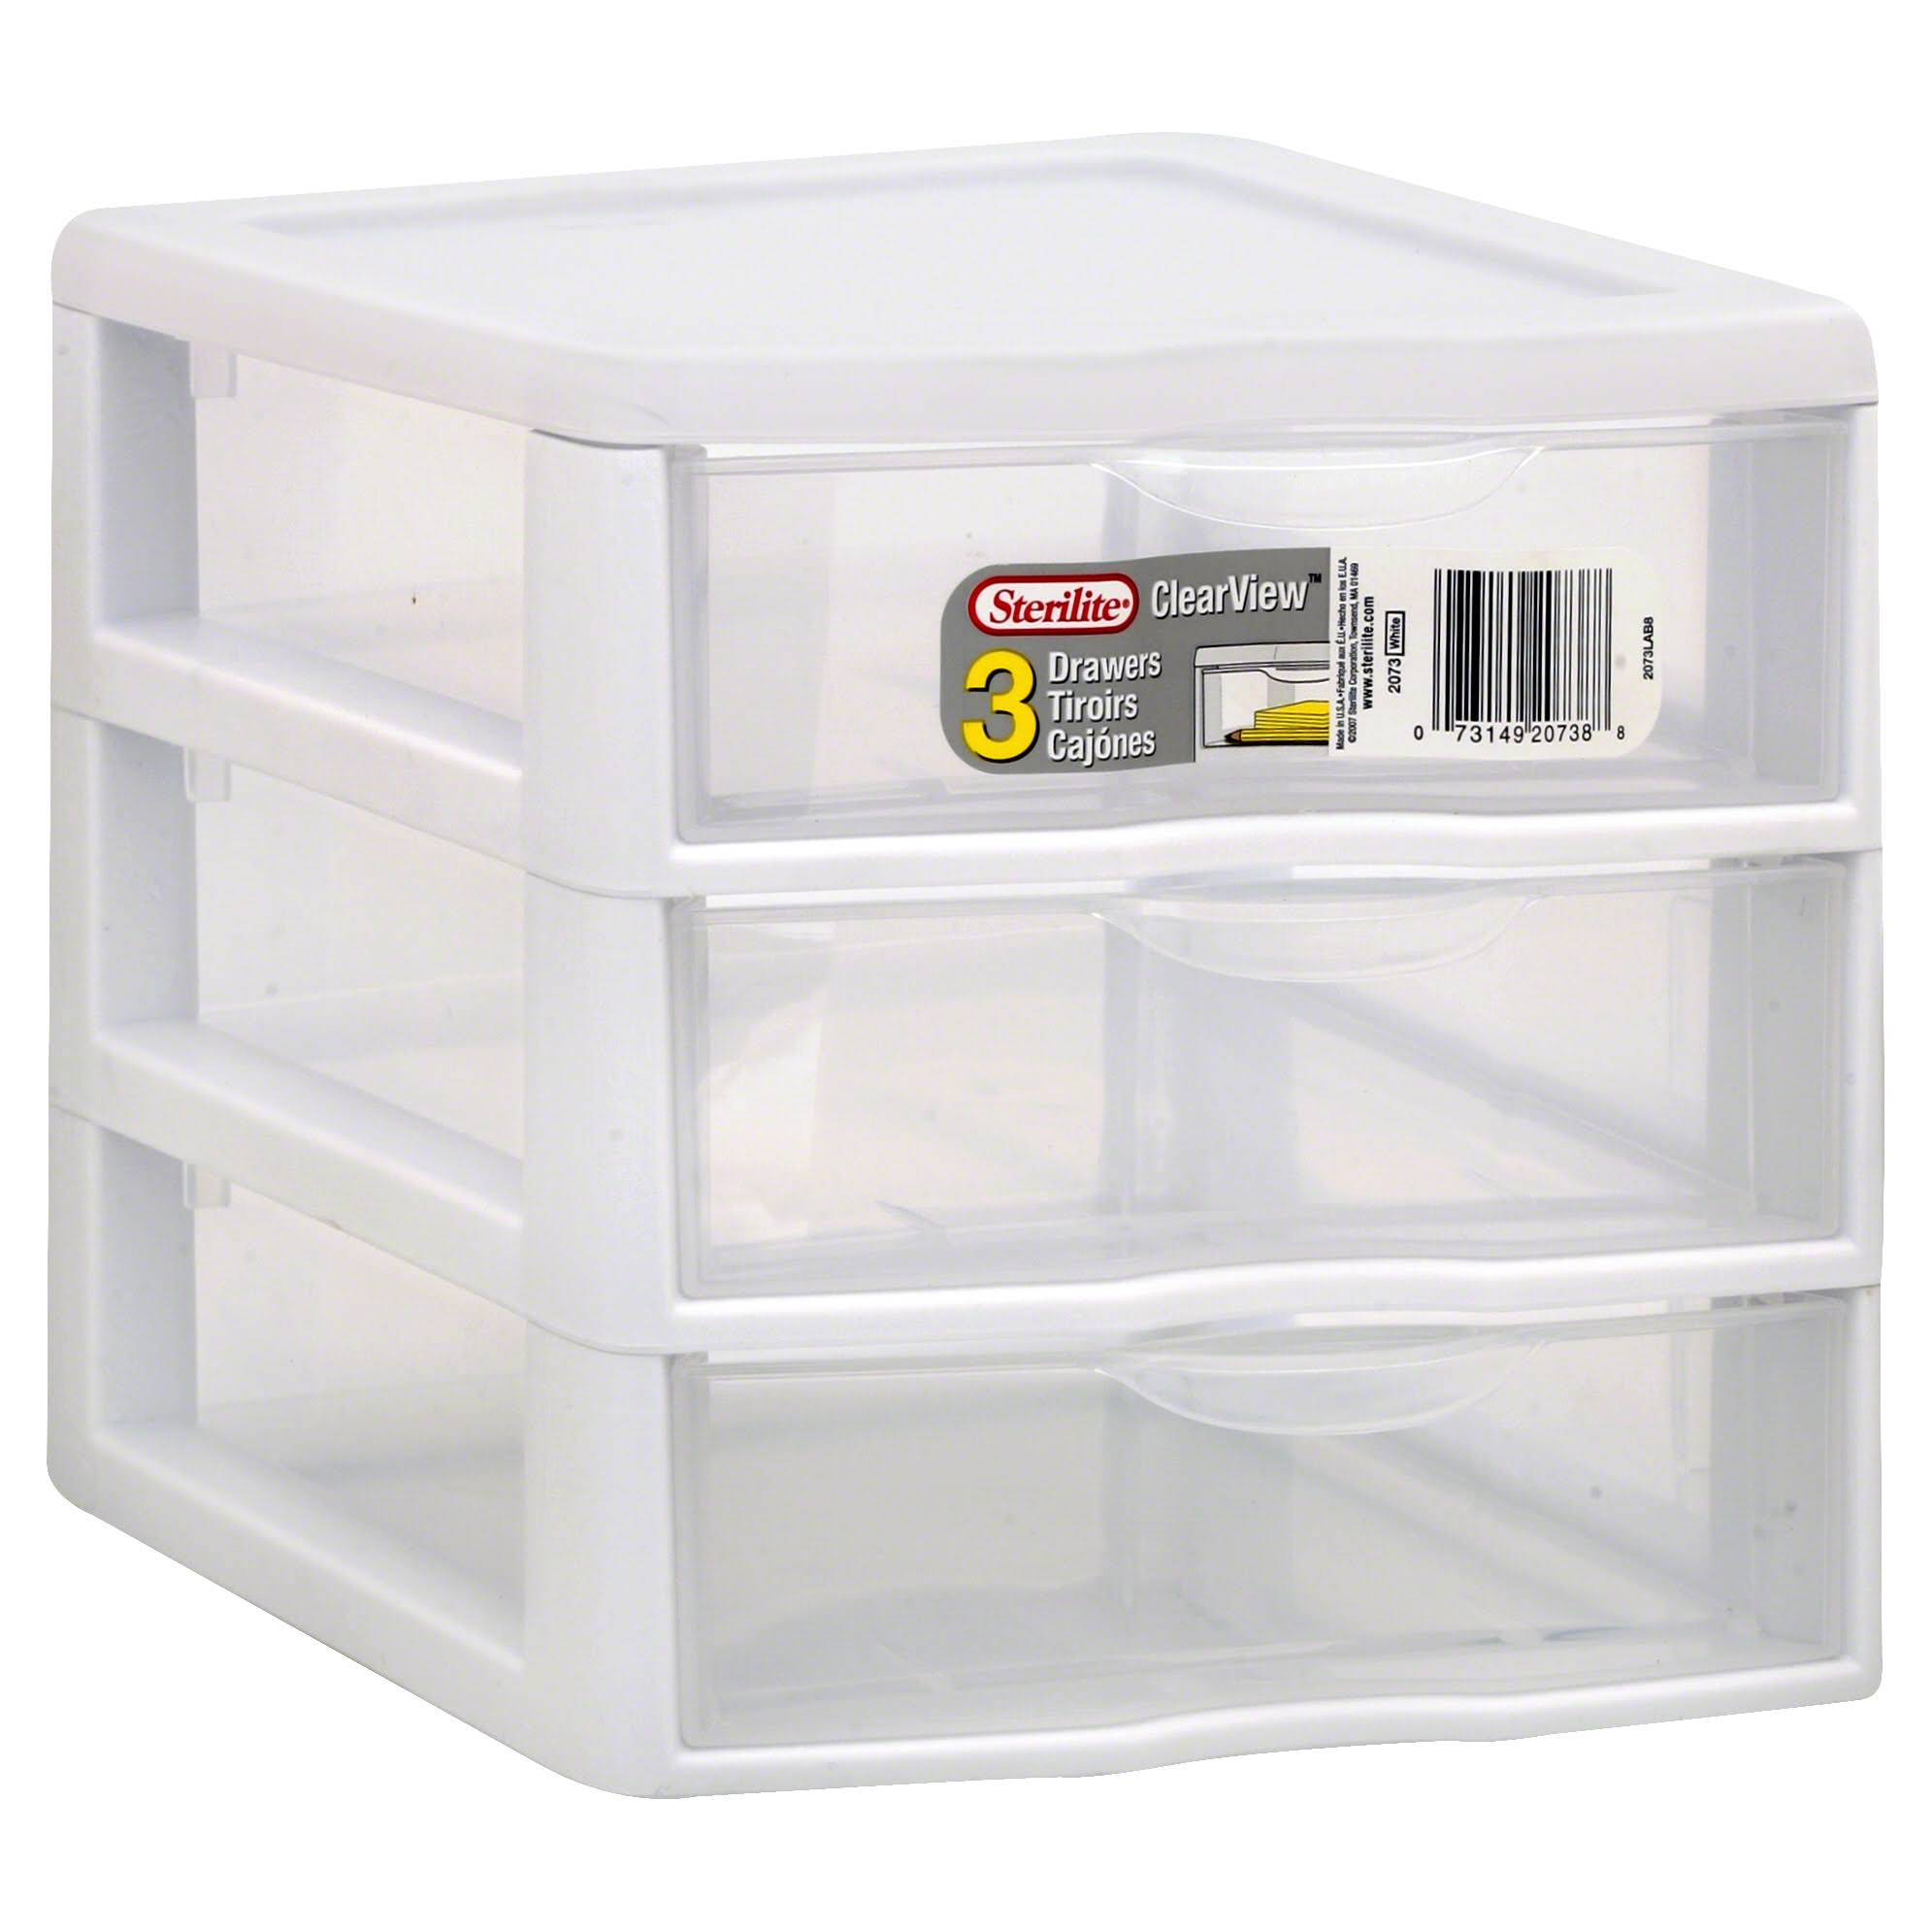 Sterilite 3 Drawer Mini Organizer - Clear